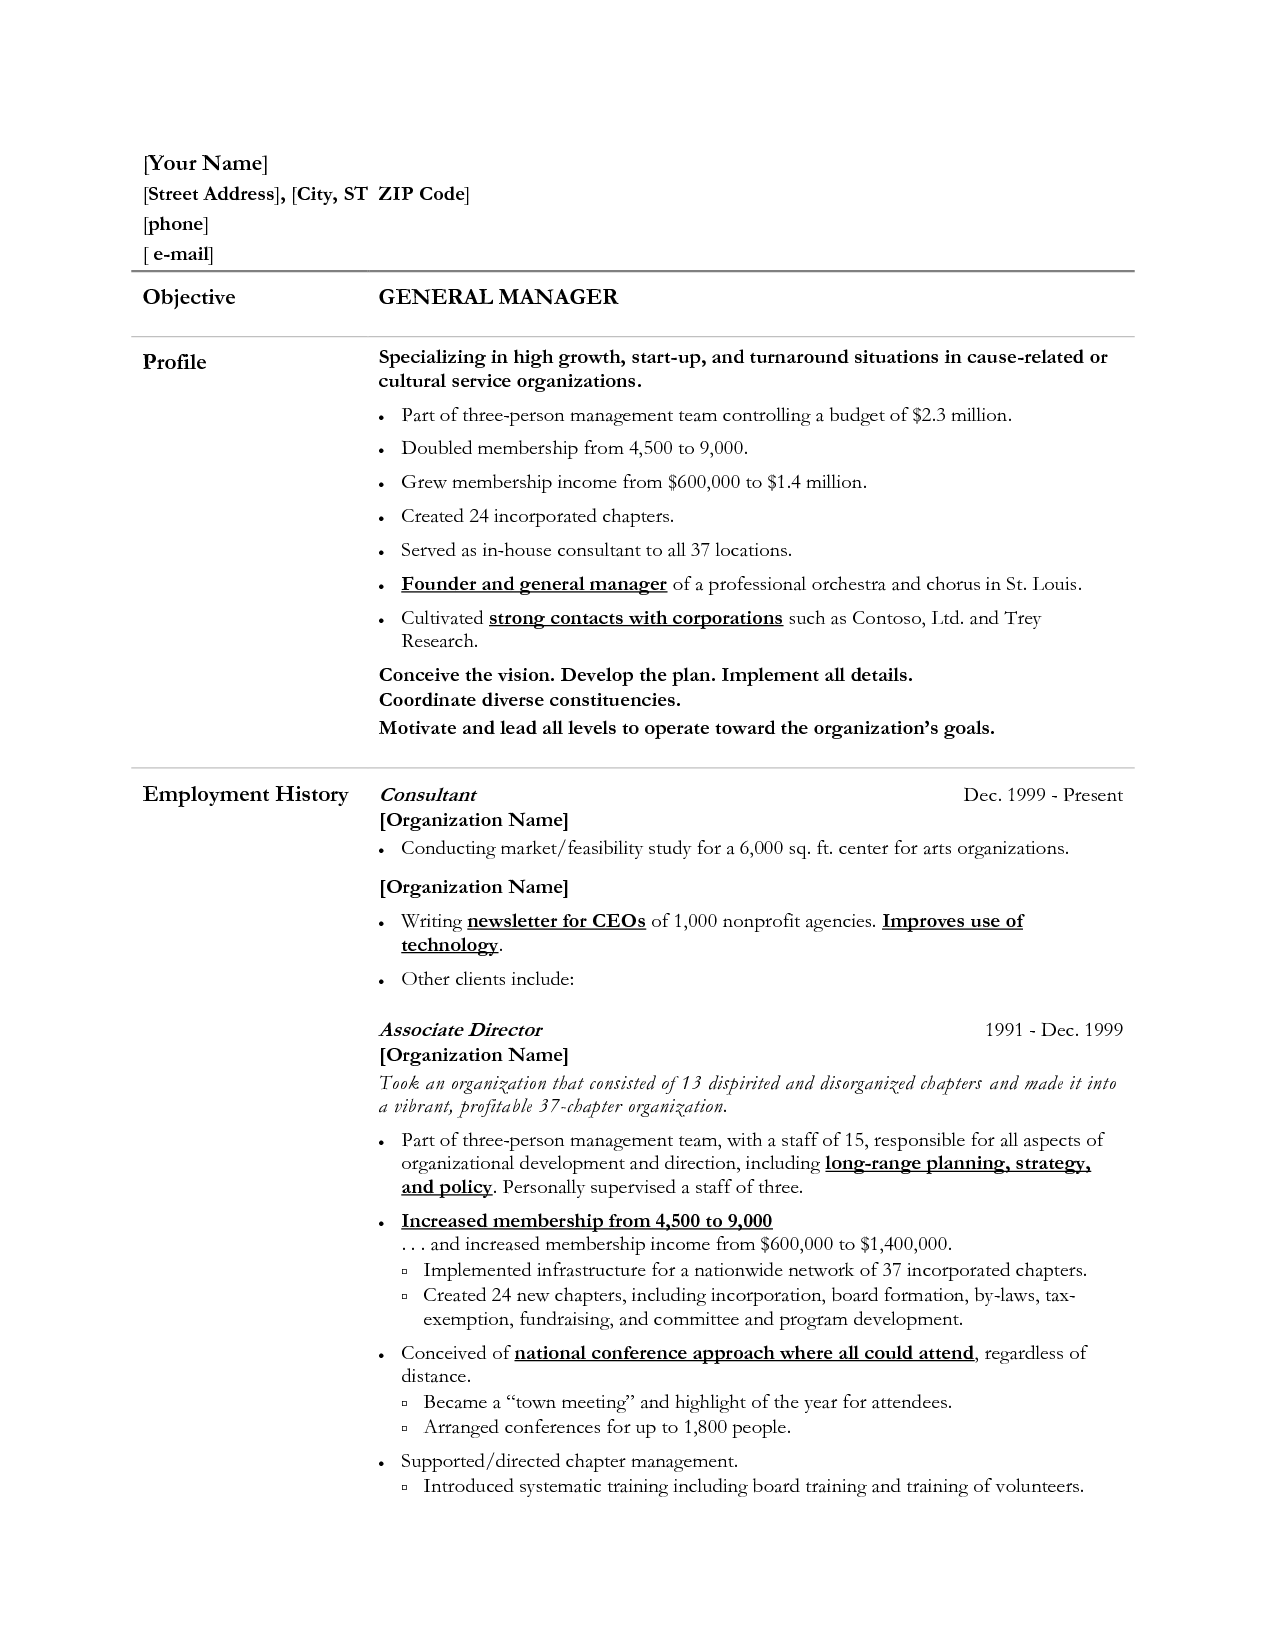 General Manager Resume Example Http Www Resumecareer Info